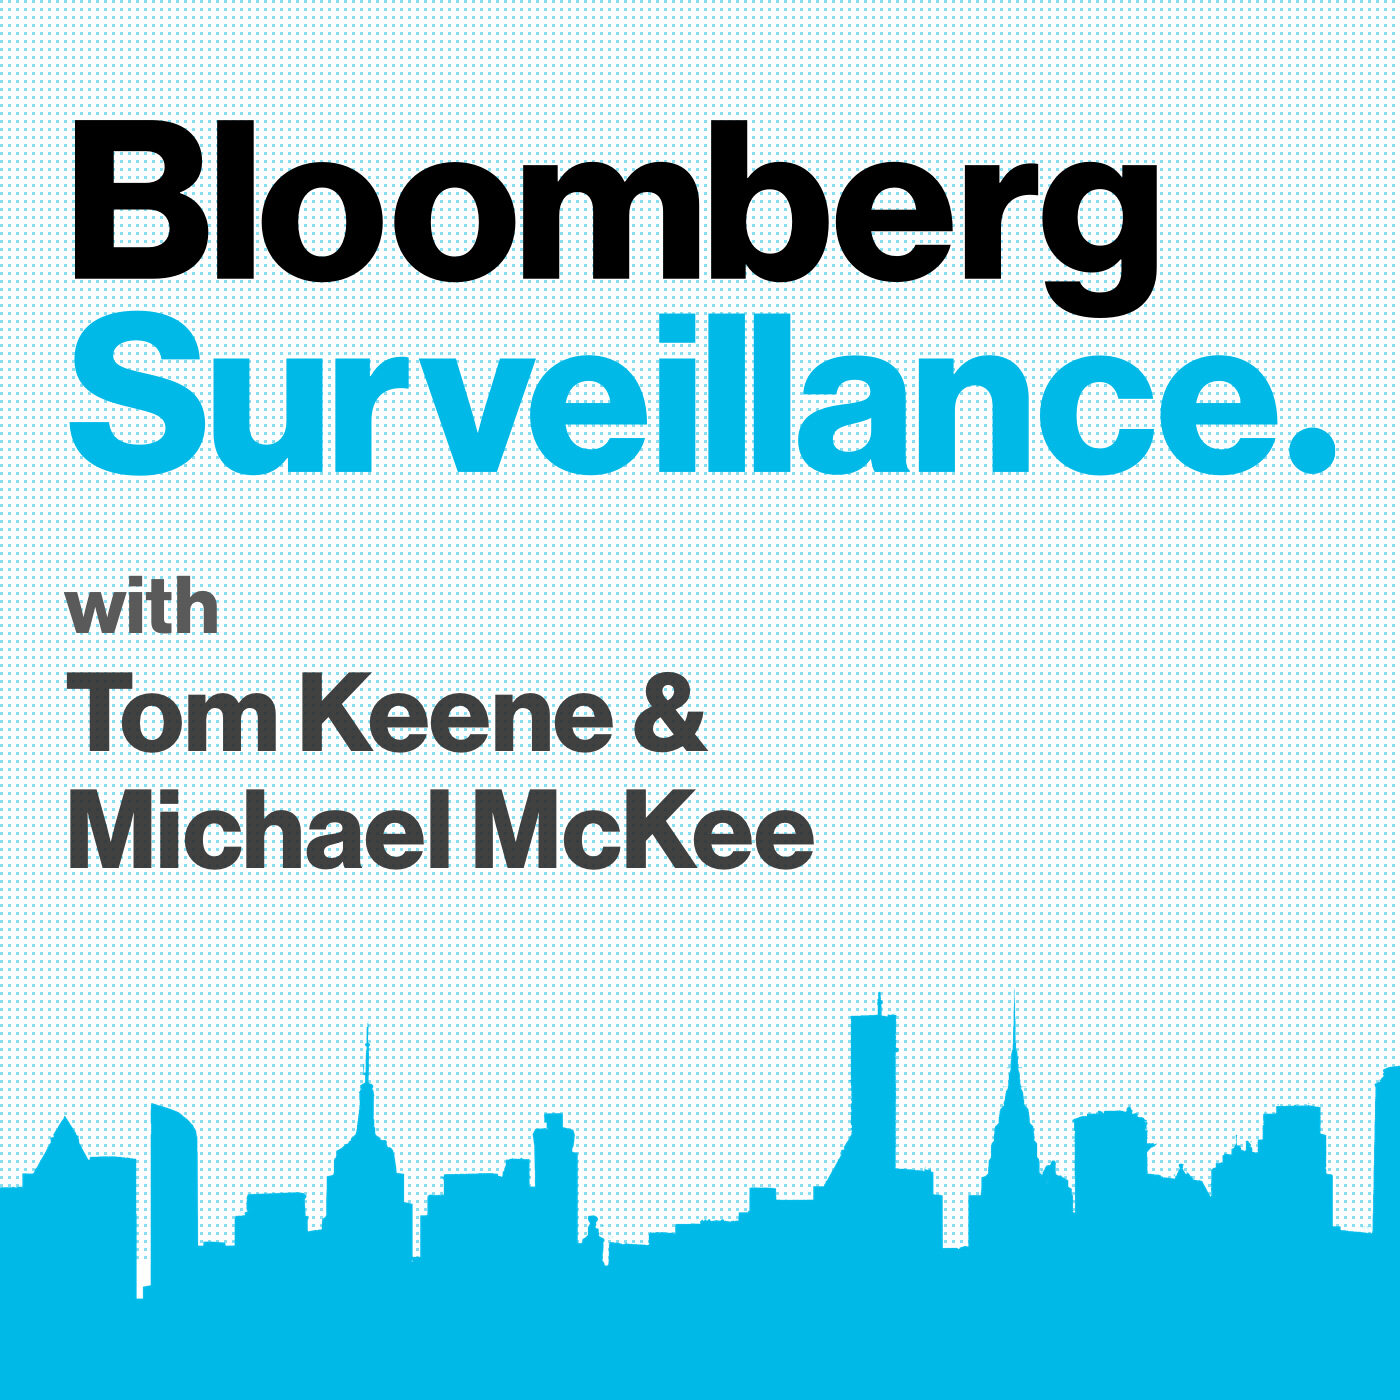 Rss feed from bloomberg